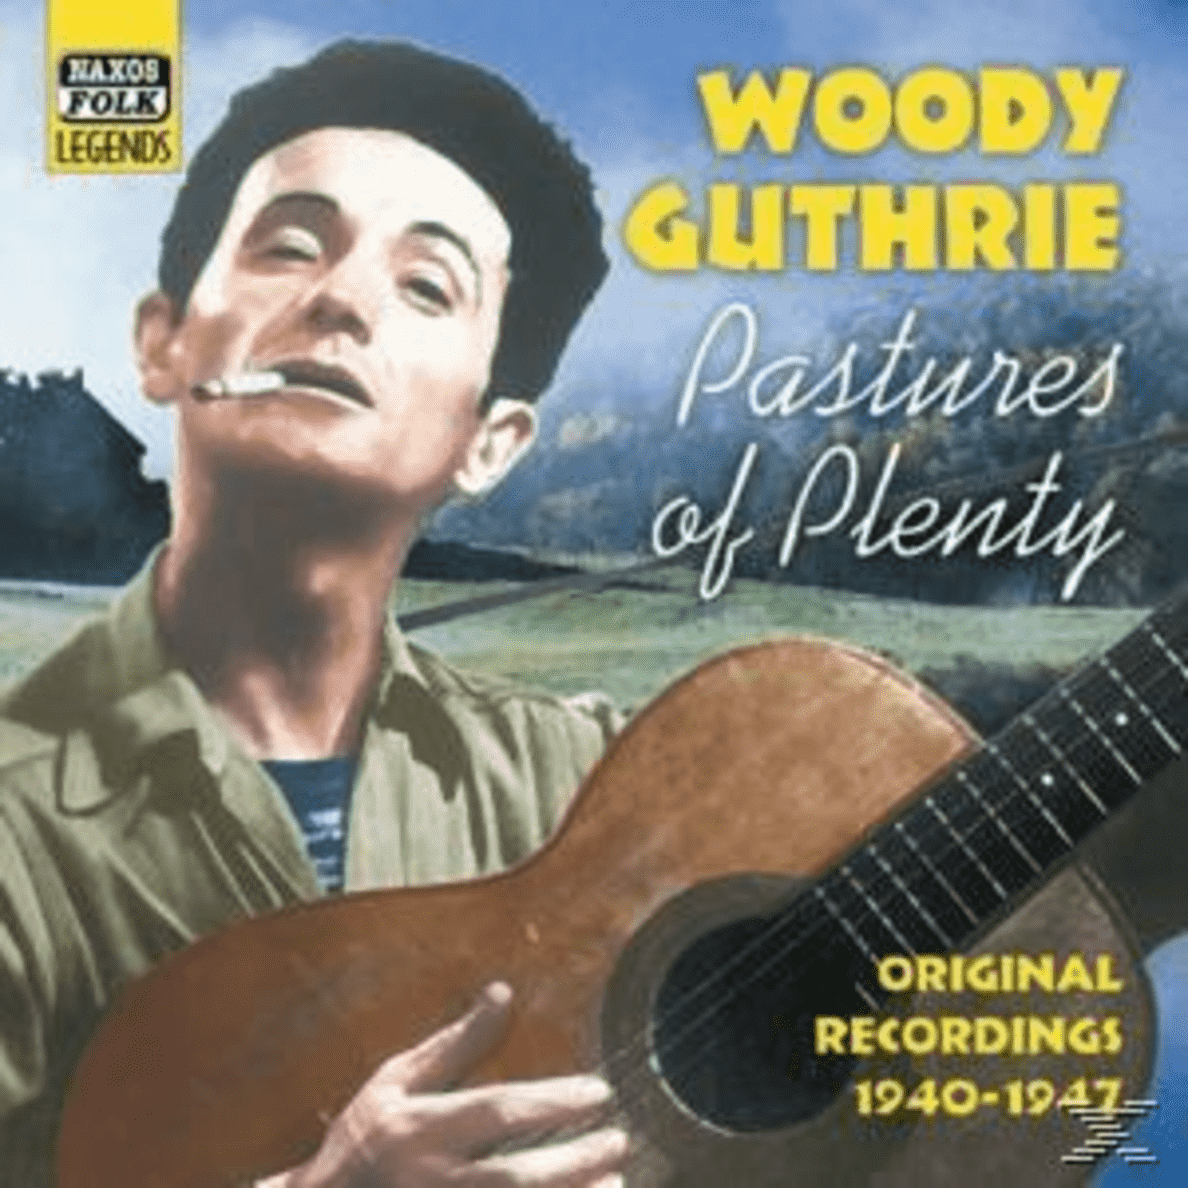 Pastures Of Plenty Woody Guthrie auf CD